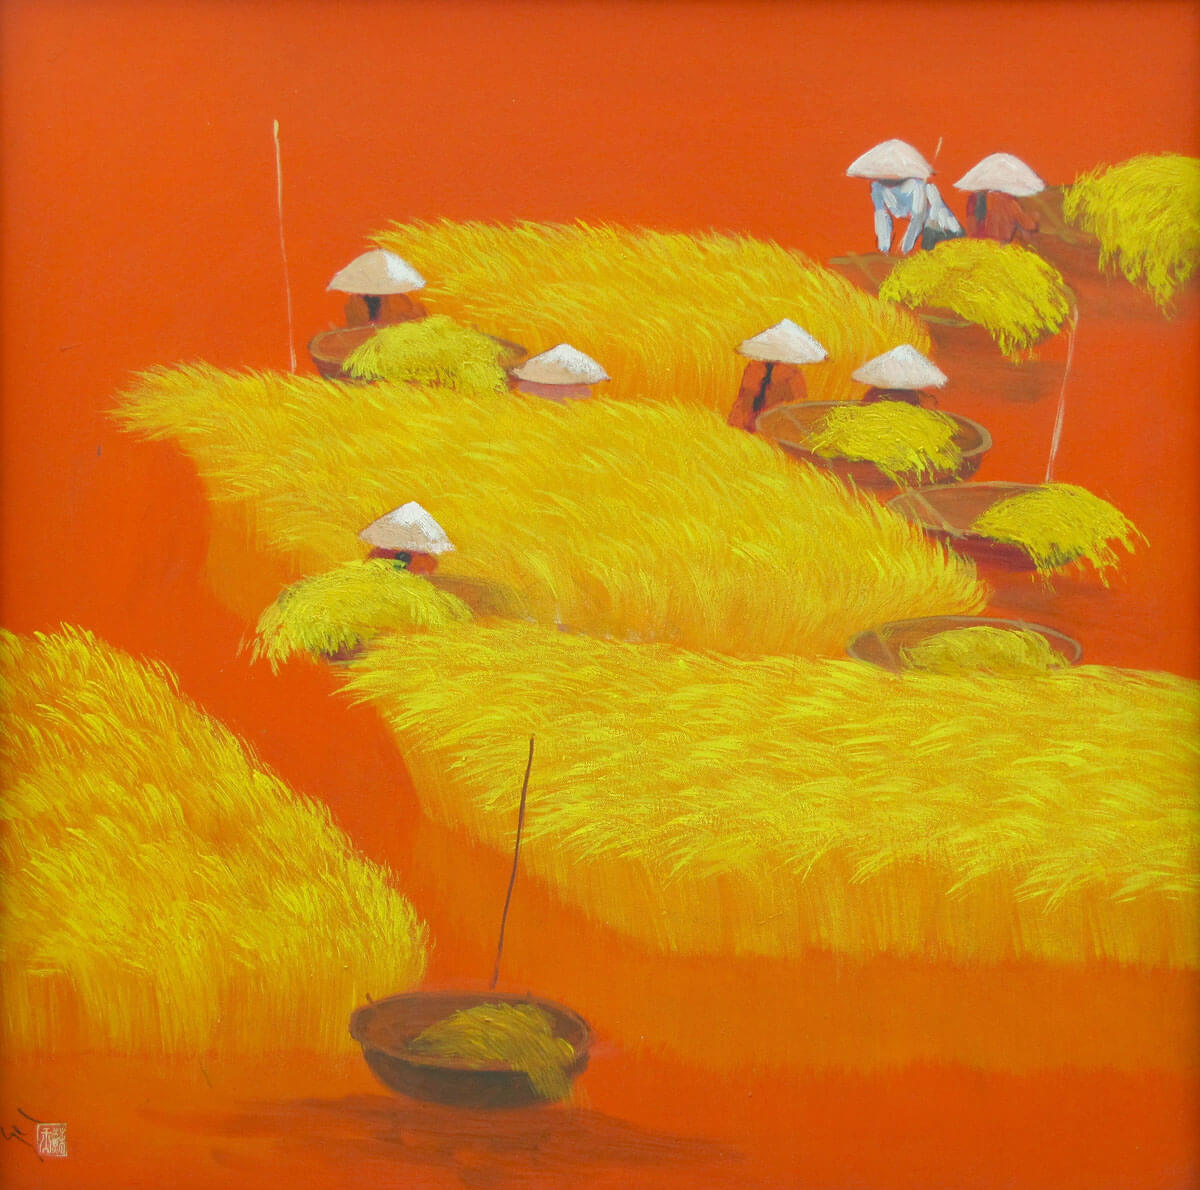 Working on the rice field 06 -Vietnamese Painting